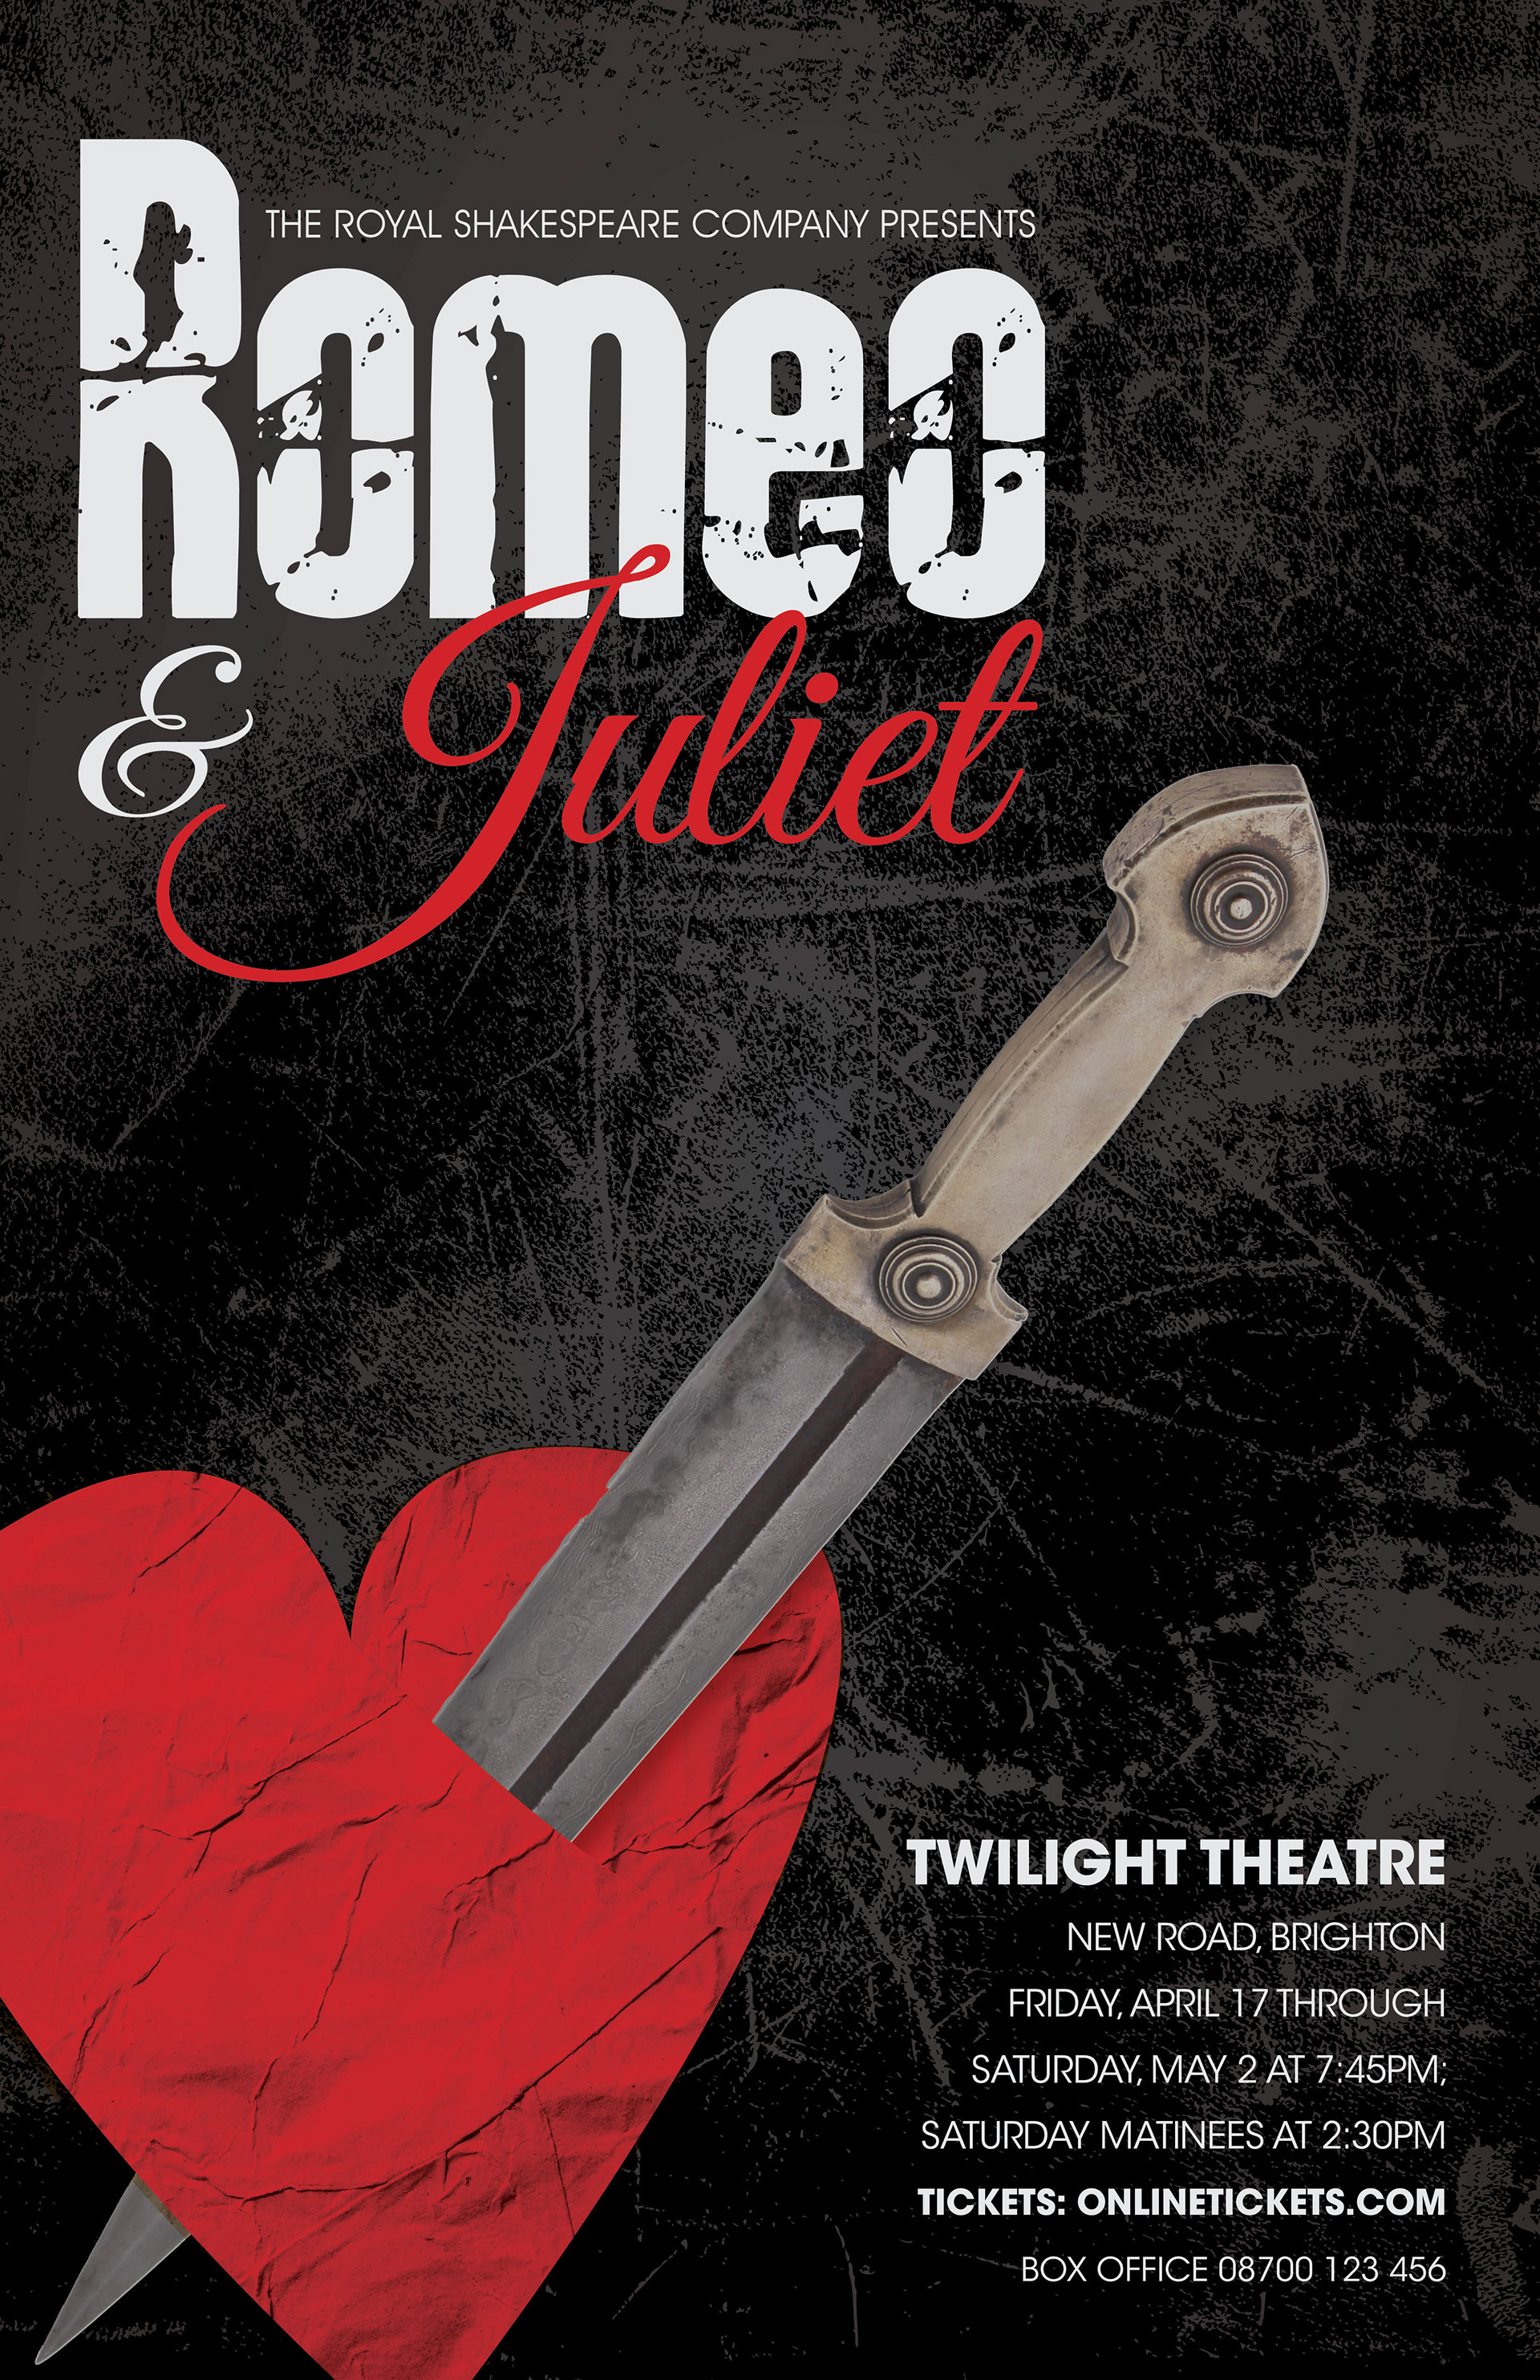 Final Poster Design Utilizes Textures And Contrasting Colors To Create A Dramatic Feel Grunge Font Was Used For Romeos Name Flowing Script